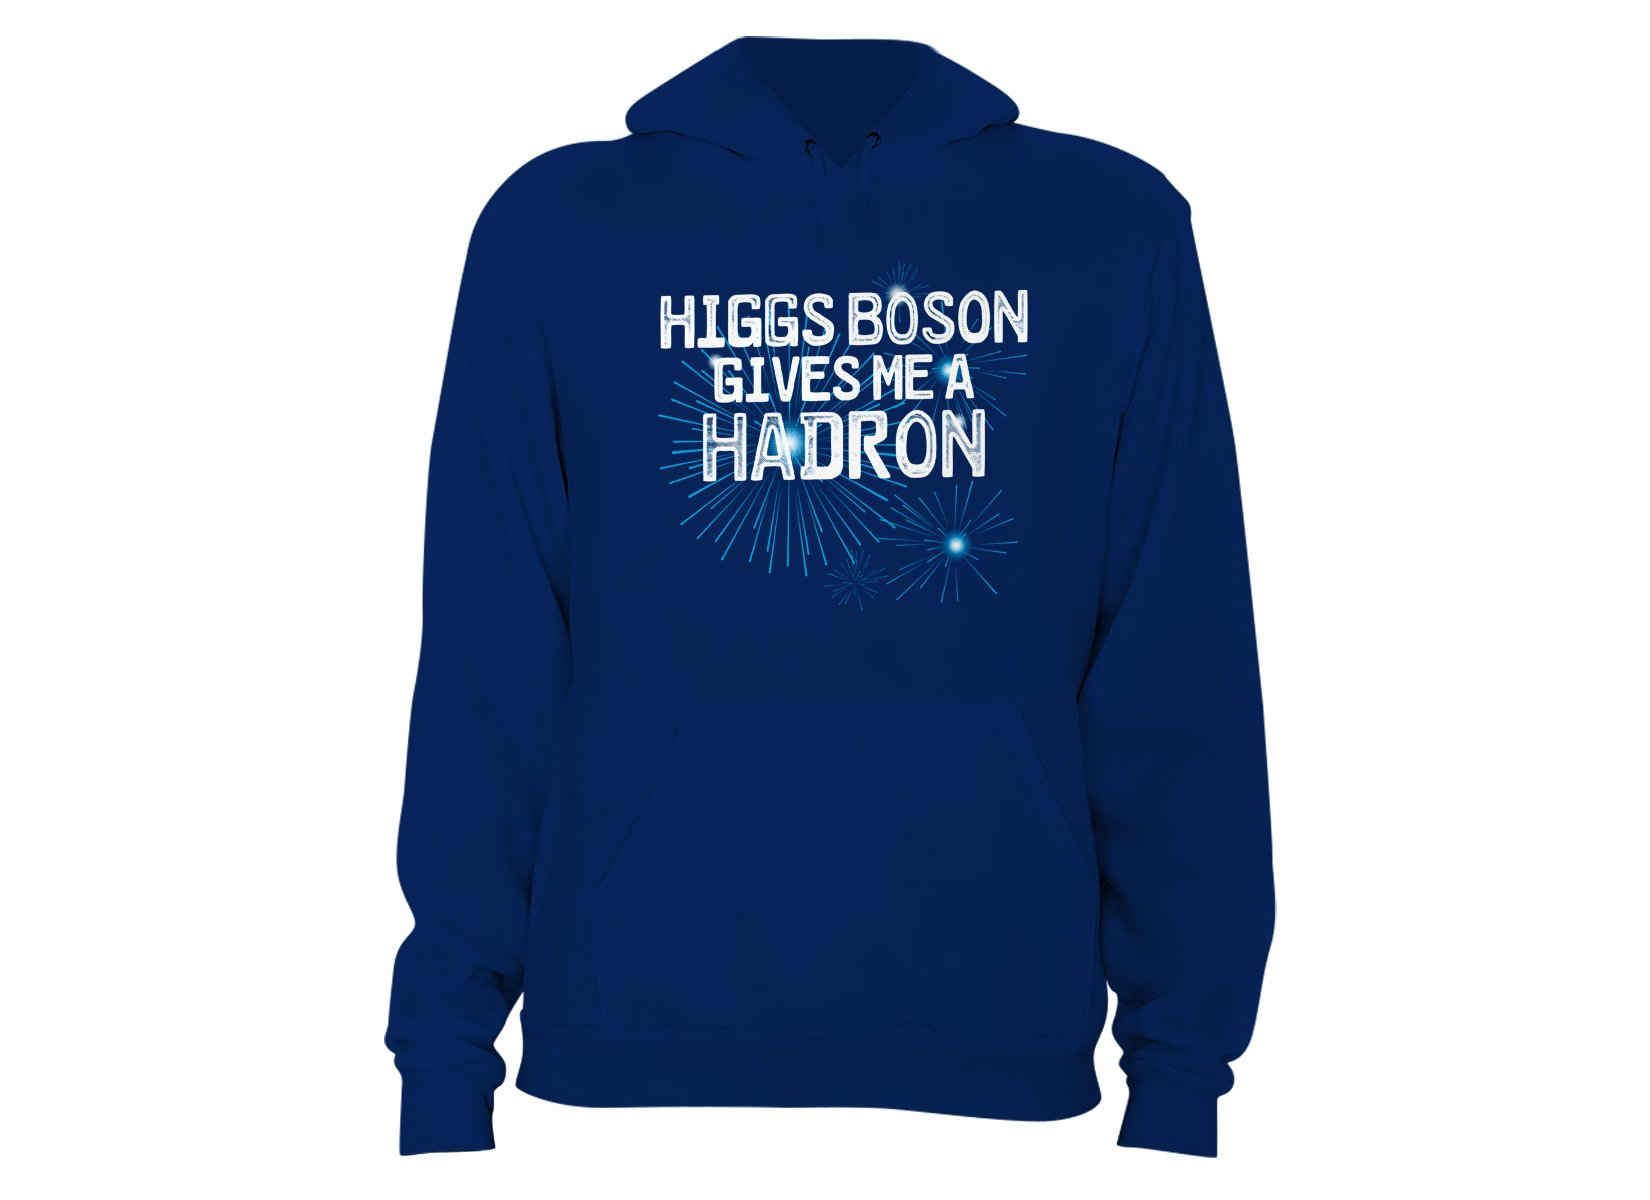 Higgs Boson Gives Me A Hadron on Hoodie